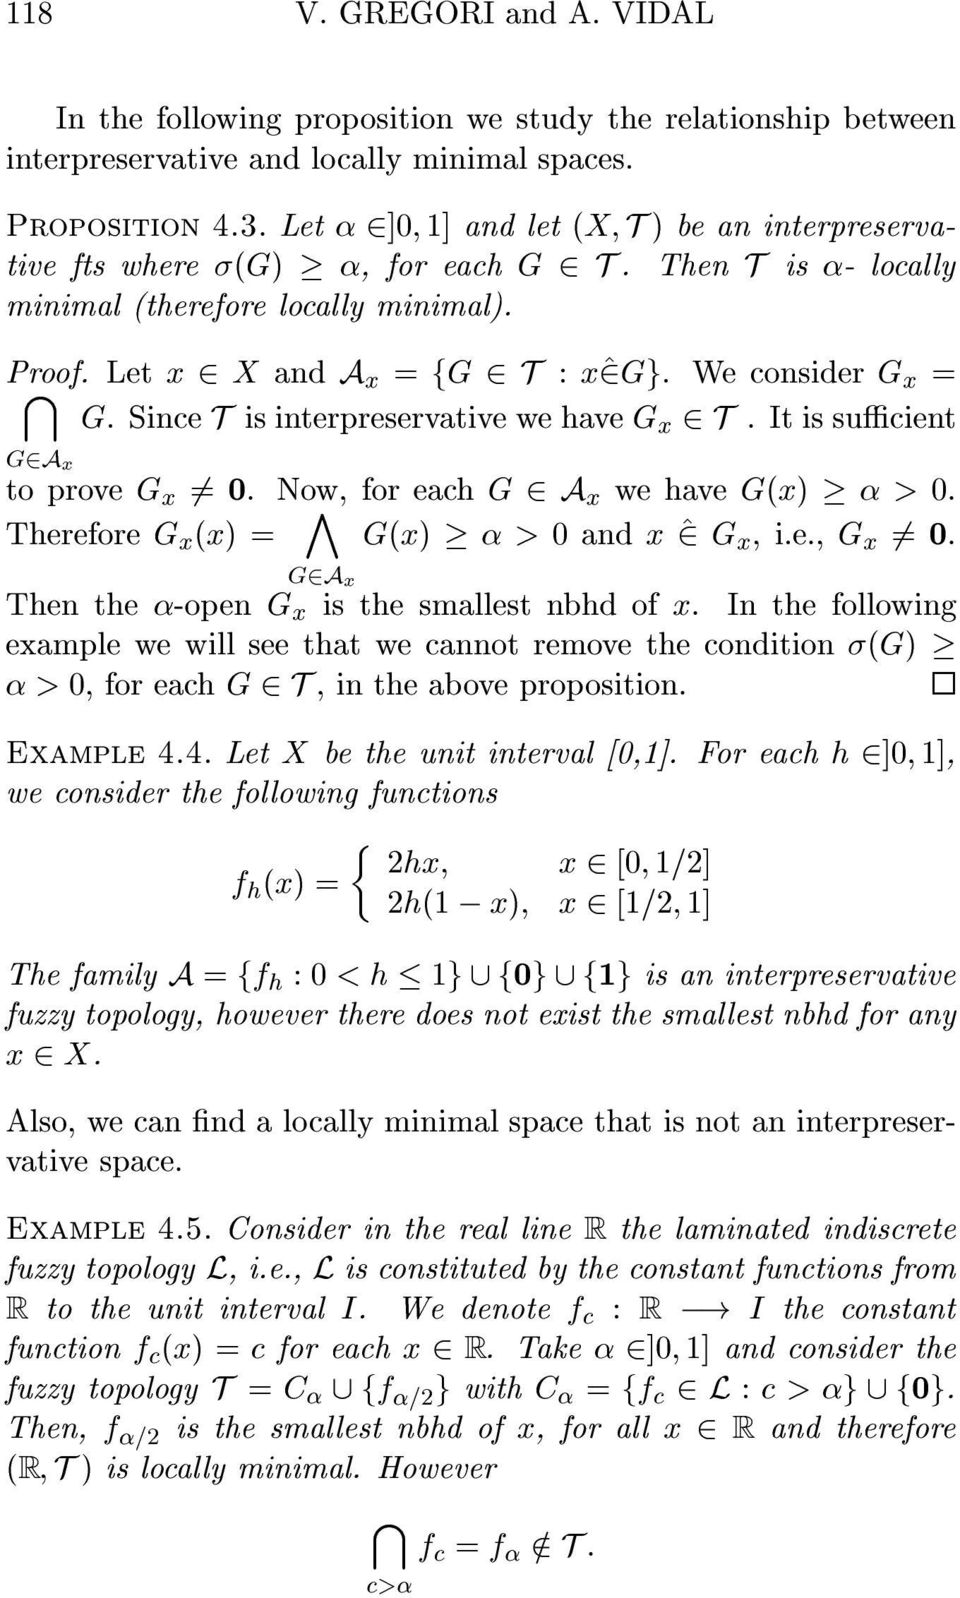 We consider G x = G. Since T is interpreservative wehave G x 2T. It is sucient G2A x to prove G x 6= 0. Now, ^ for each G 2 A x we have G(x) > 0. Therefore G x (x) = G(x) > 0 and x ^2 G x, i.e., G x 6= 0.